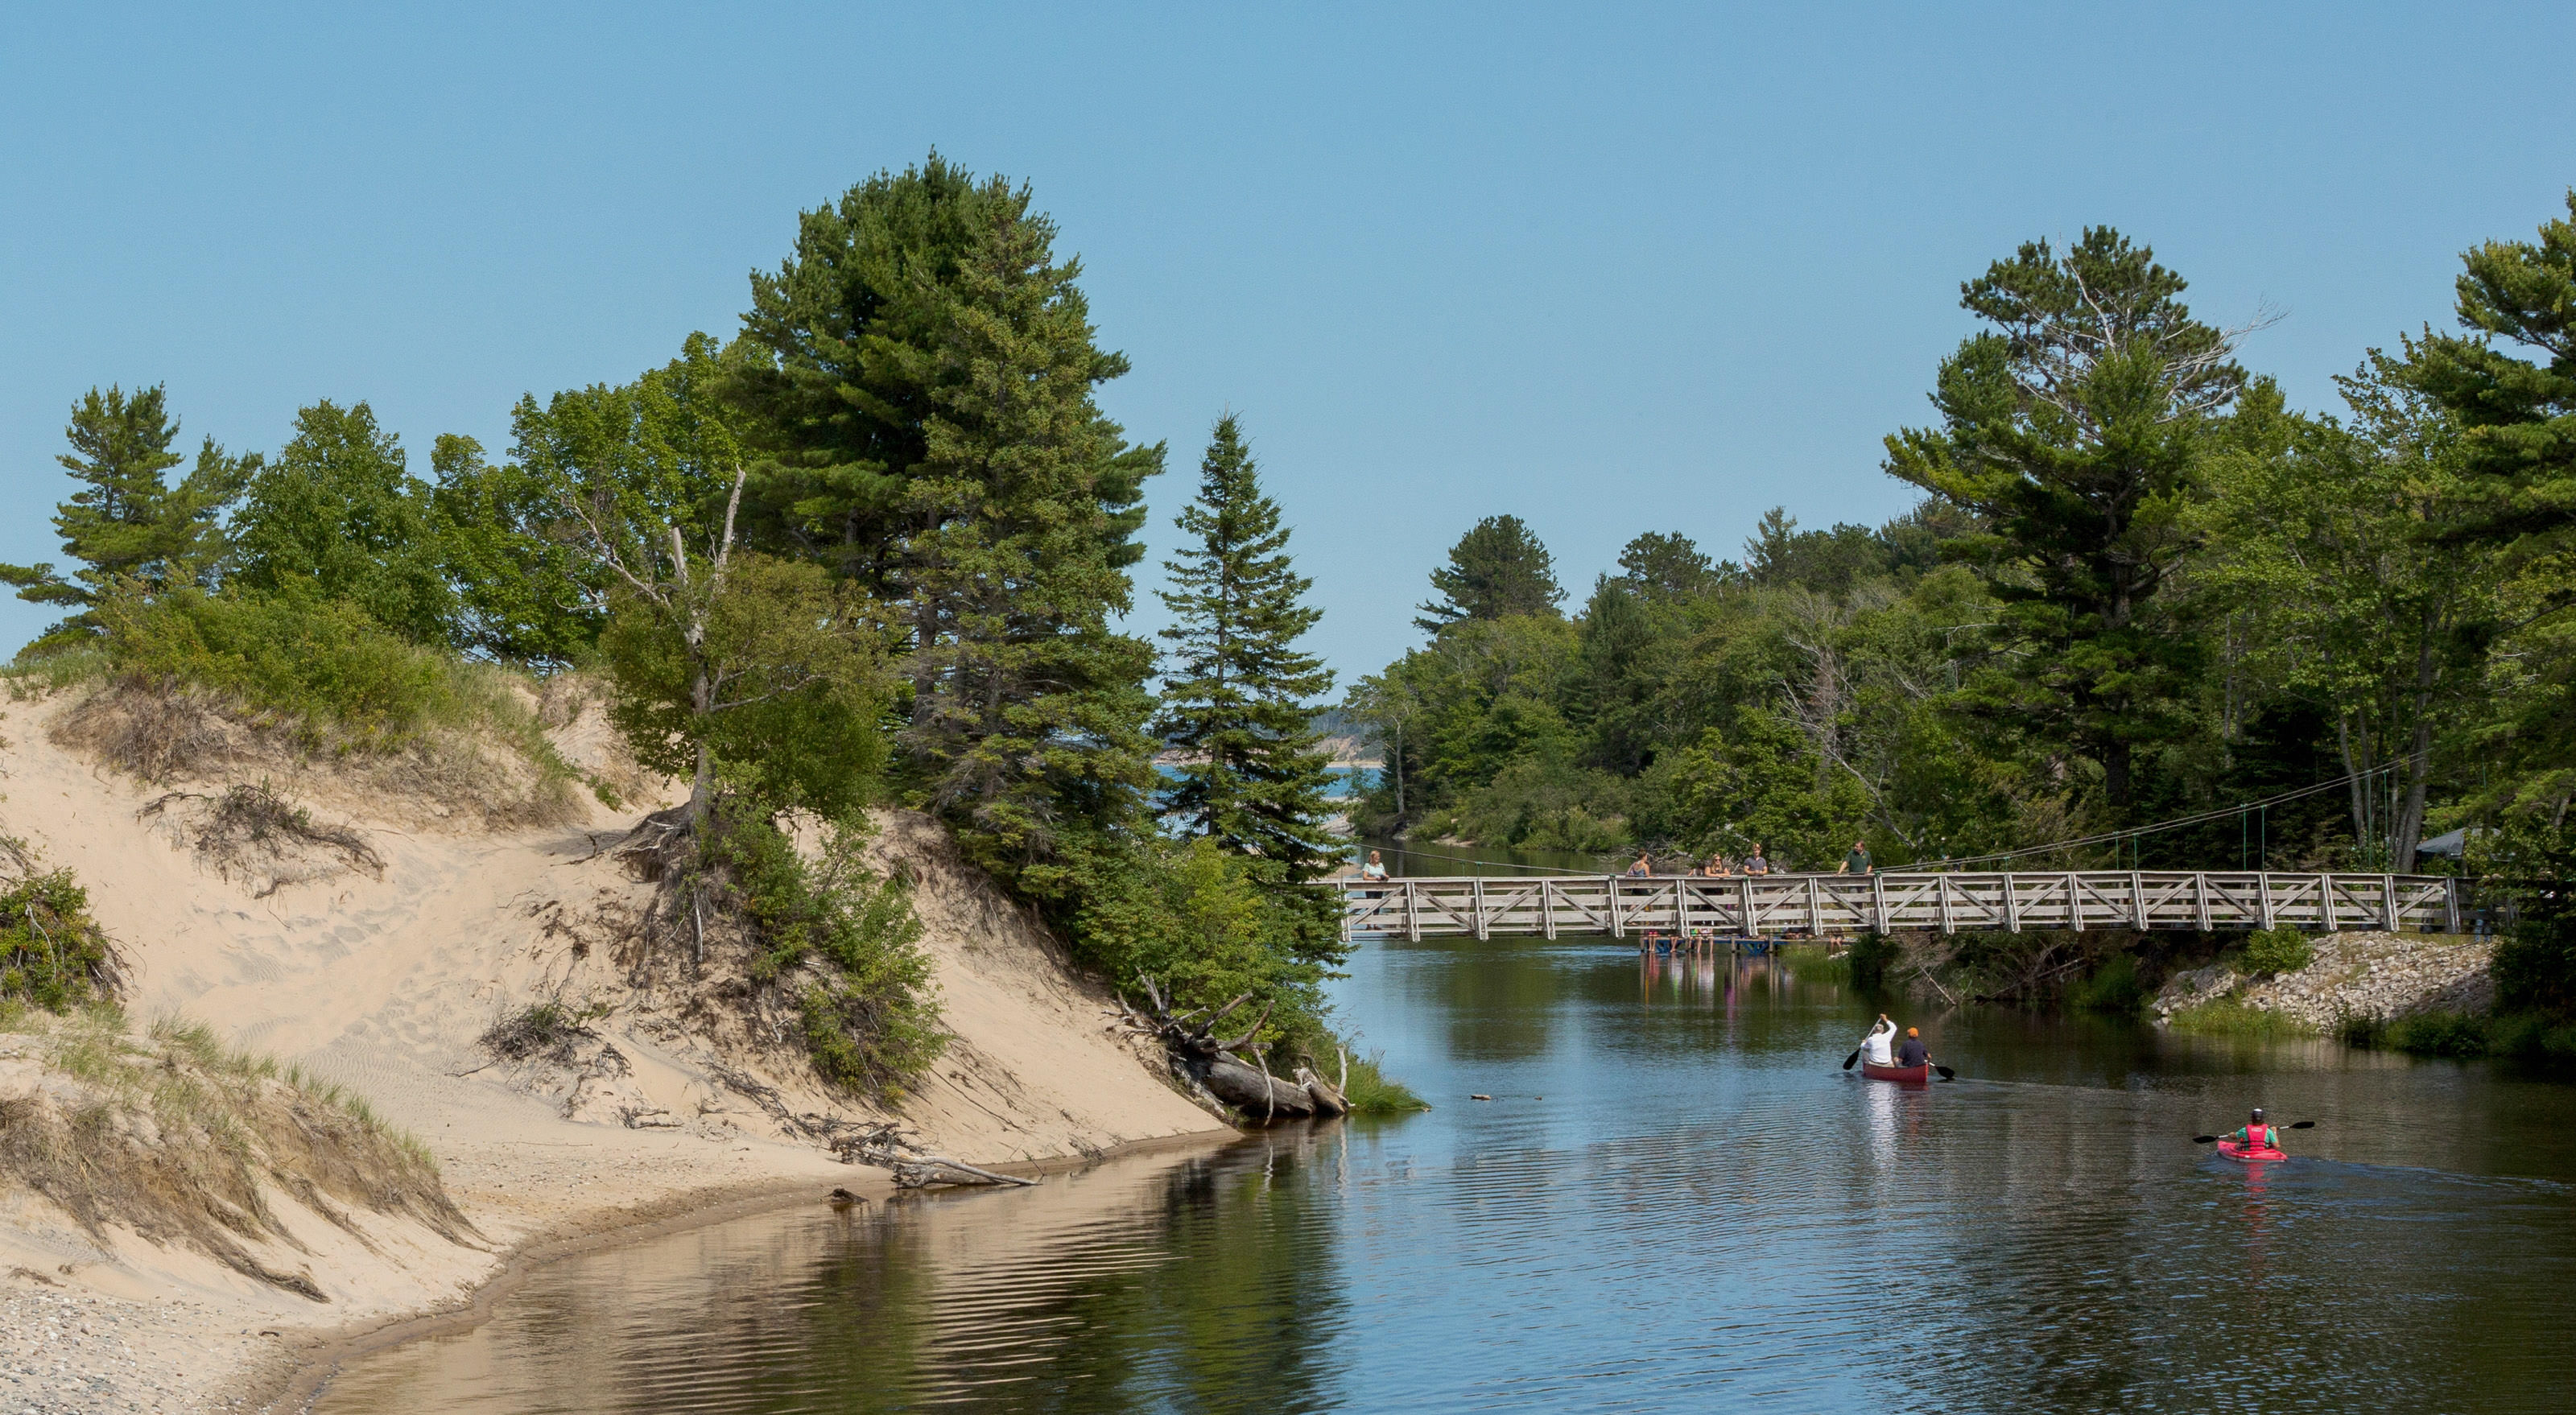 Canoers and kayakers approach the mouth of the Two Hearted River. A sand bank is to the left; a forested bank is the to the right. A footbridge spans above them..